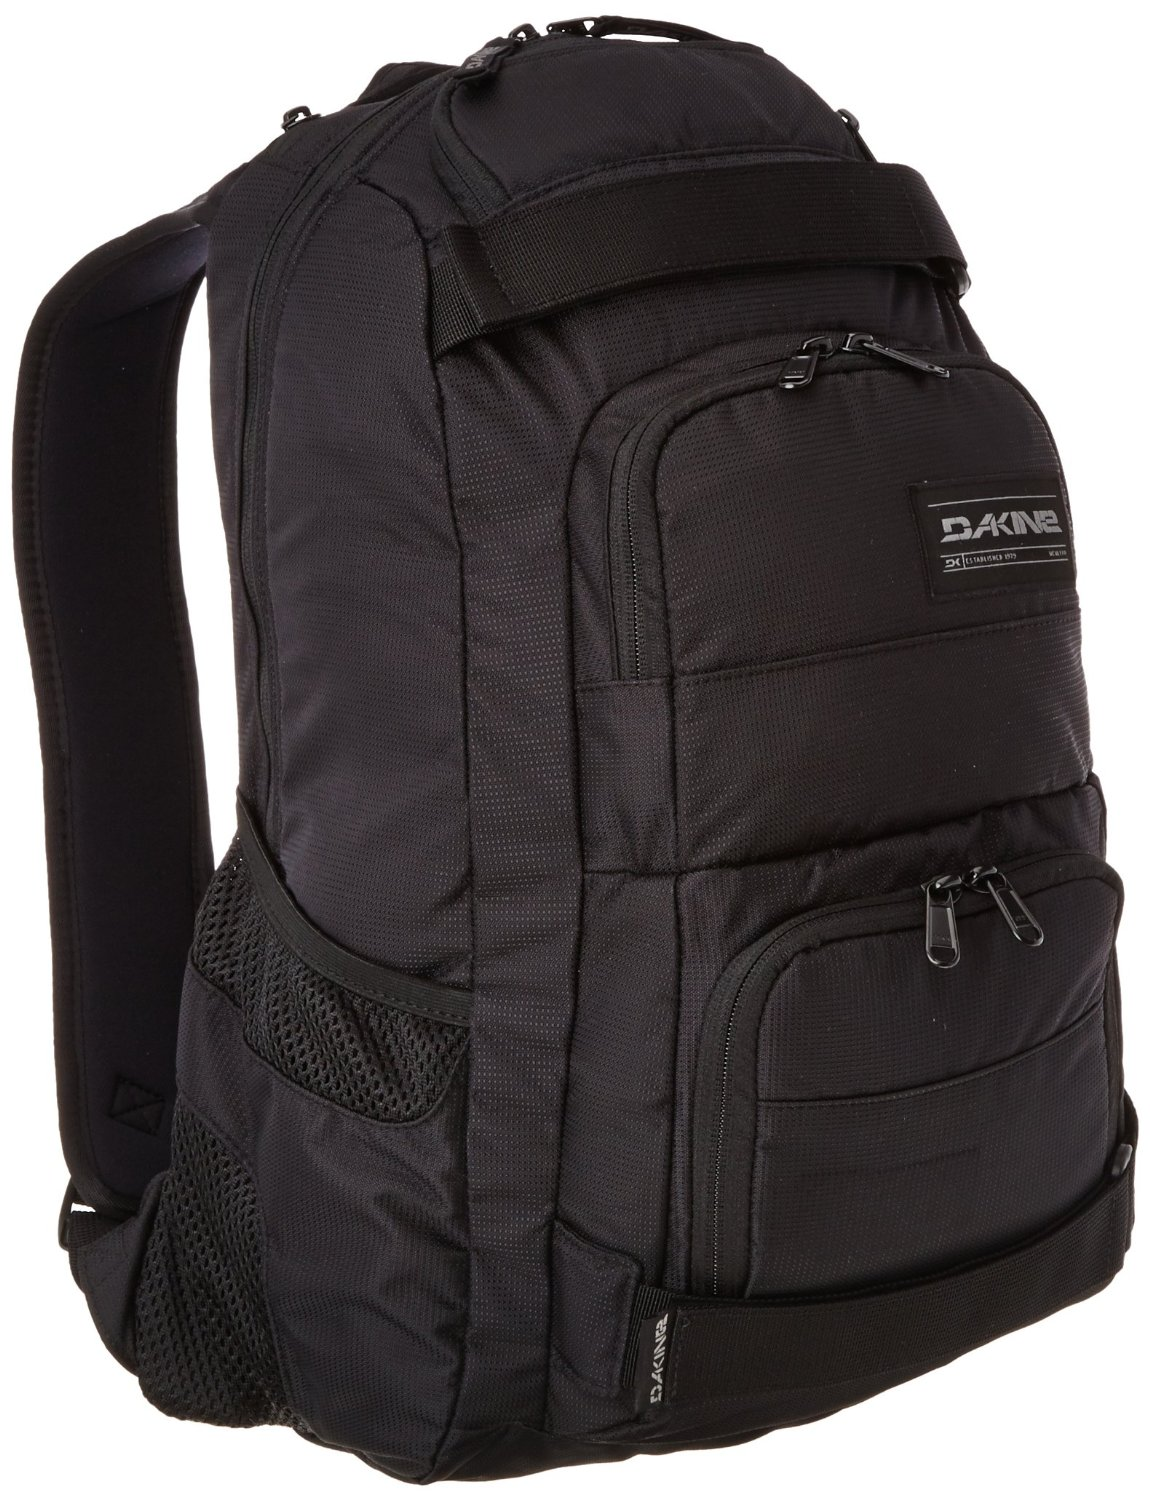 Dakine Duel Backpack pBrAktSm